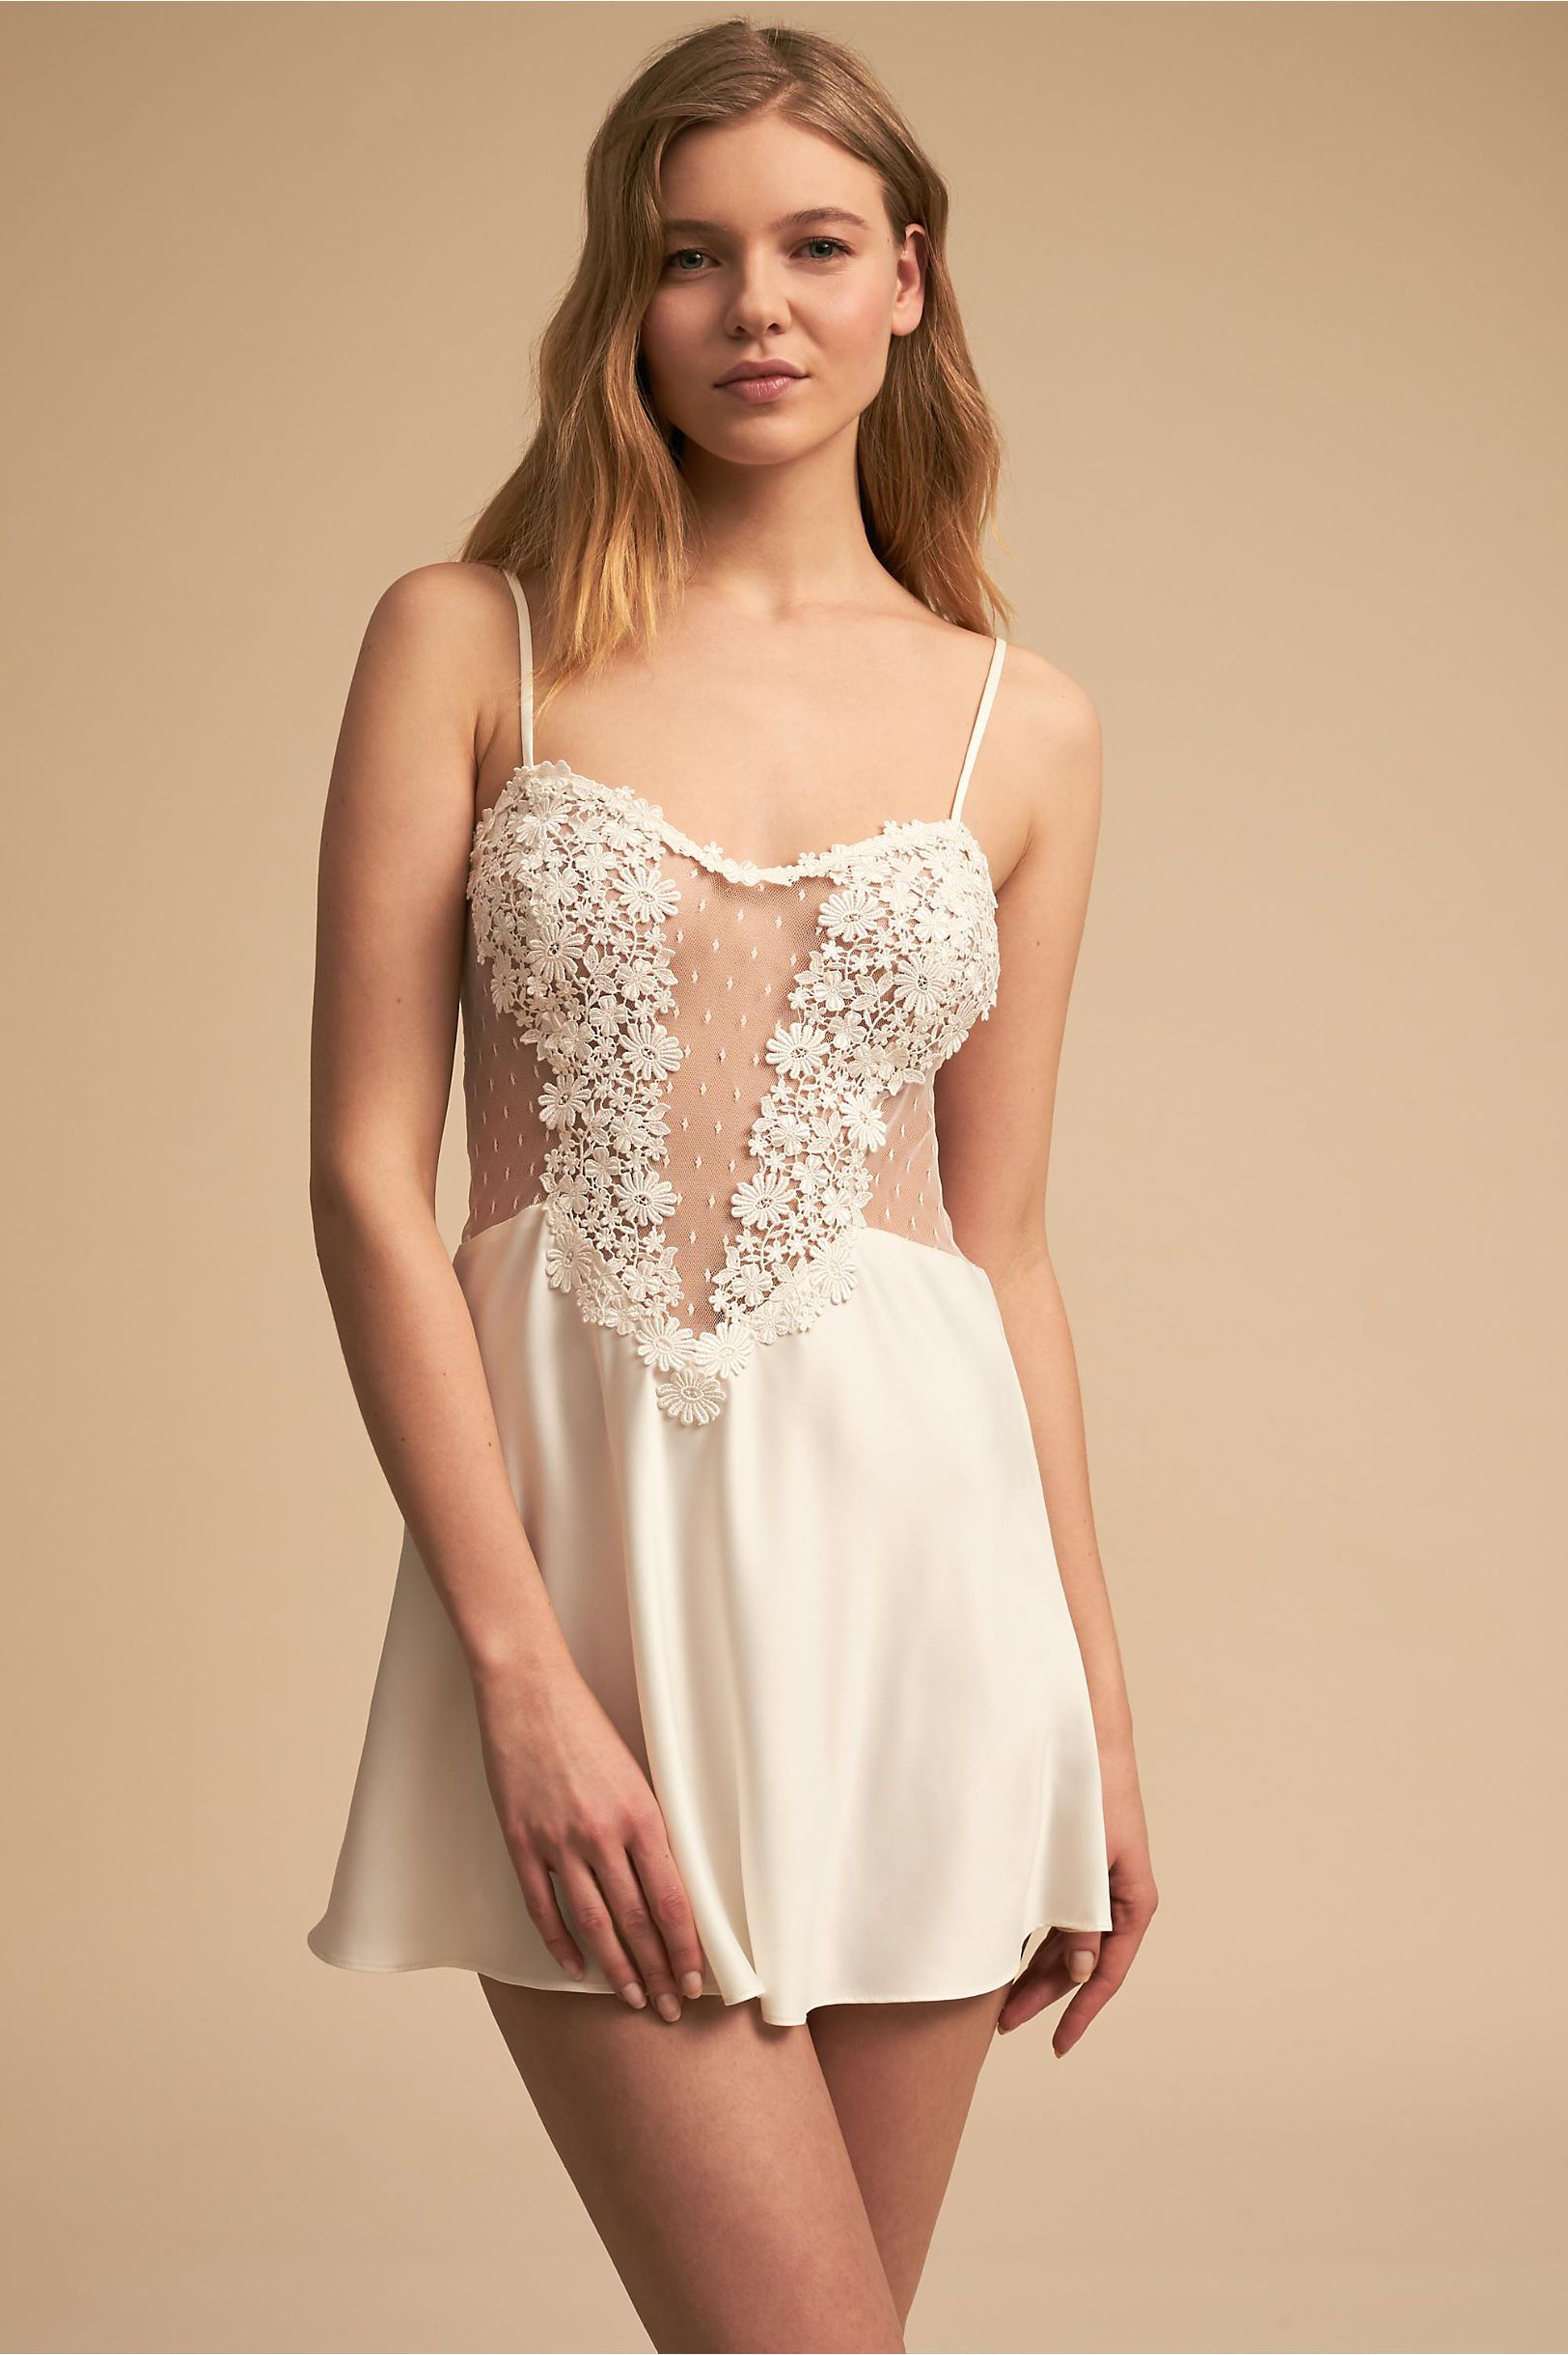 407525d1d BHLDN s Flora Nikrooz Showstopper Chemise in Ivory Babydoll Lingerie